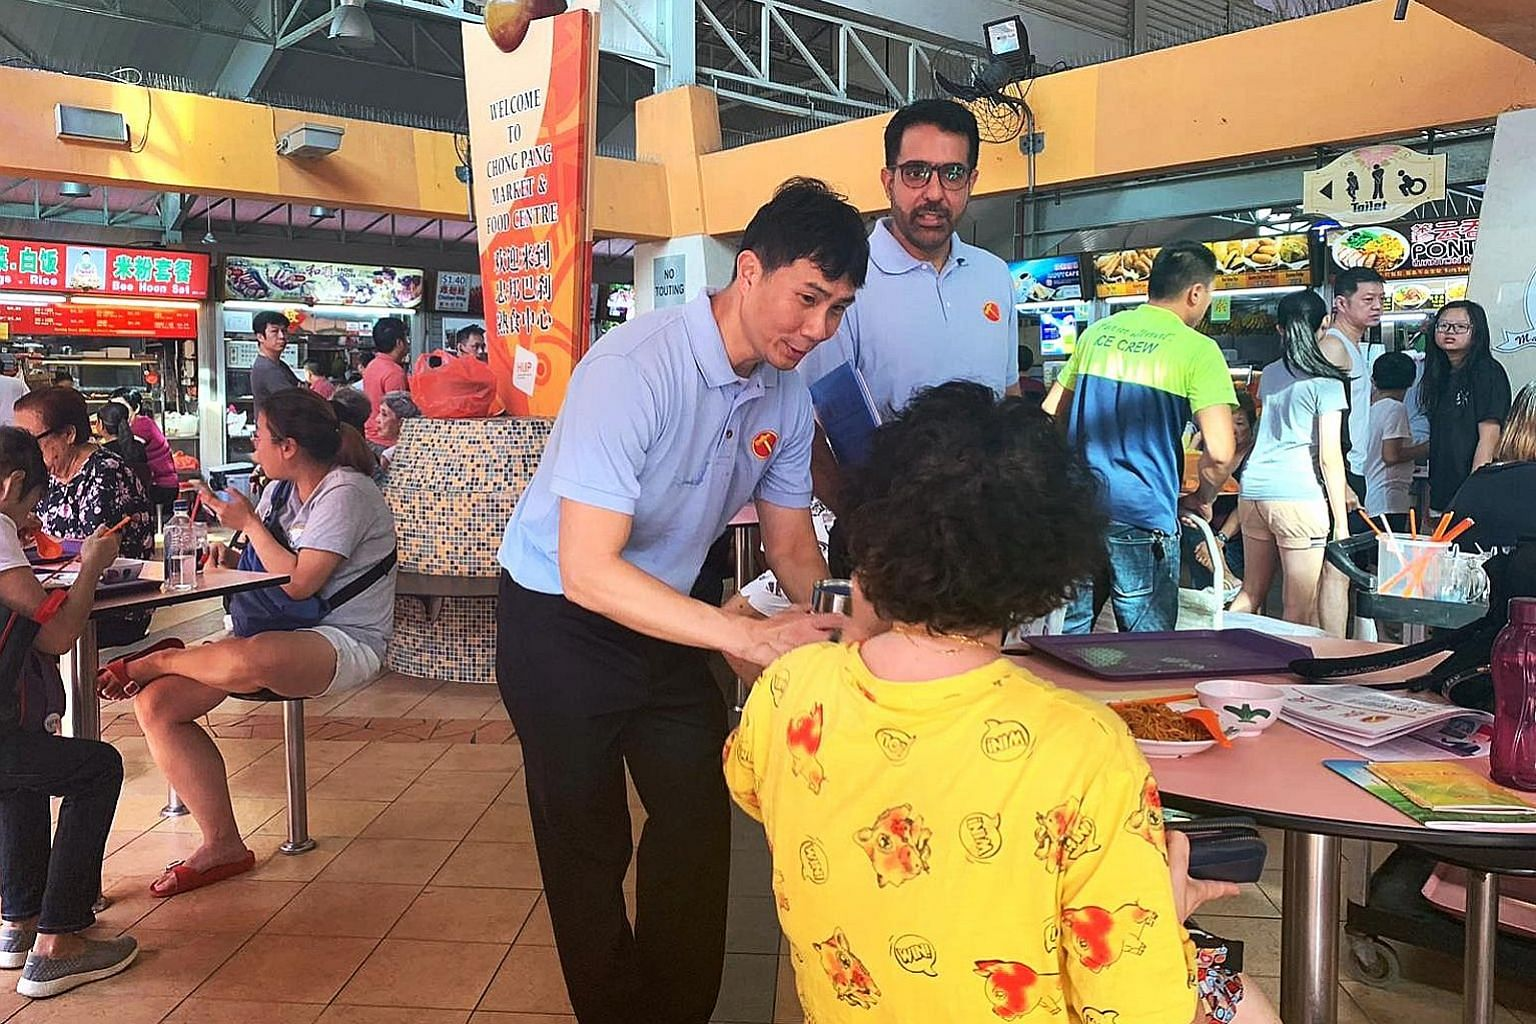 Left: Associate Professor Jamus Lim, seen here with Workers' Party chief Pritam Singh, is said to be a possible candidate for Sengkang GRC. LIANHE ZAOBAO FILE PHOTO Ms Raeesah Khan, founder of Reyna Movement and daughter of one-time presidential hope